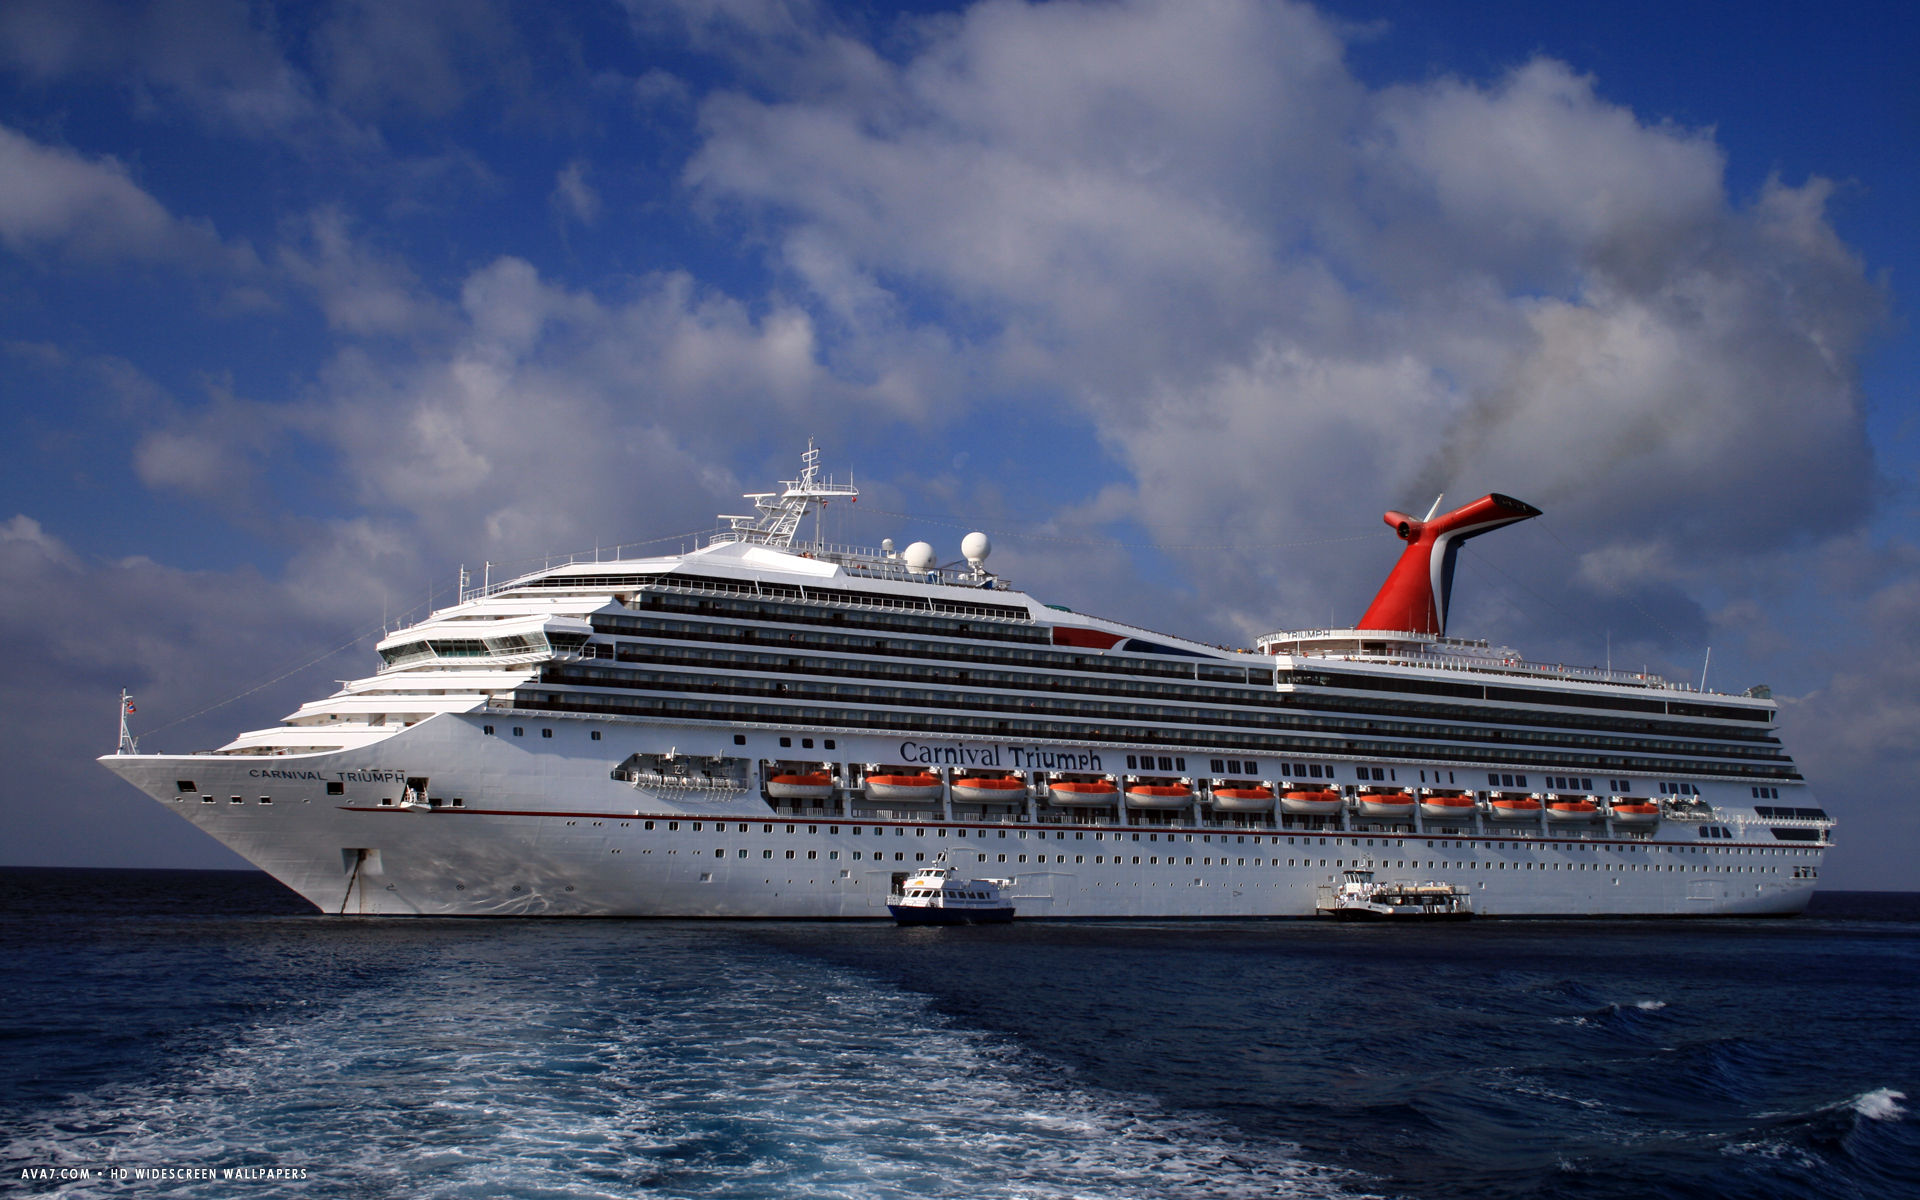 carnival triumph cruise ship hd widescreen wallpaper cruise ships 1920x1200